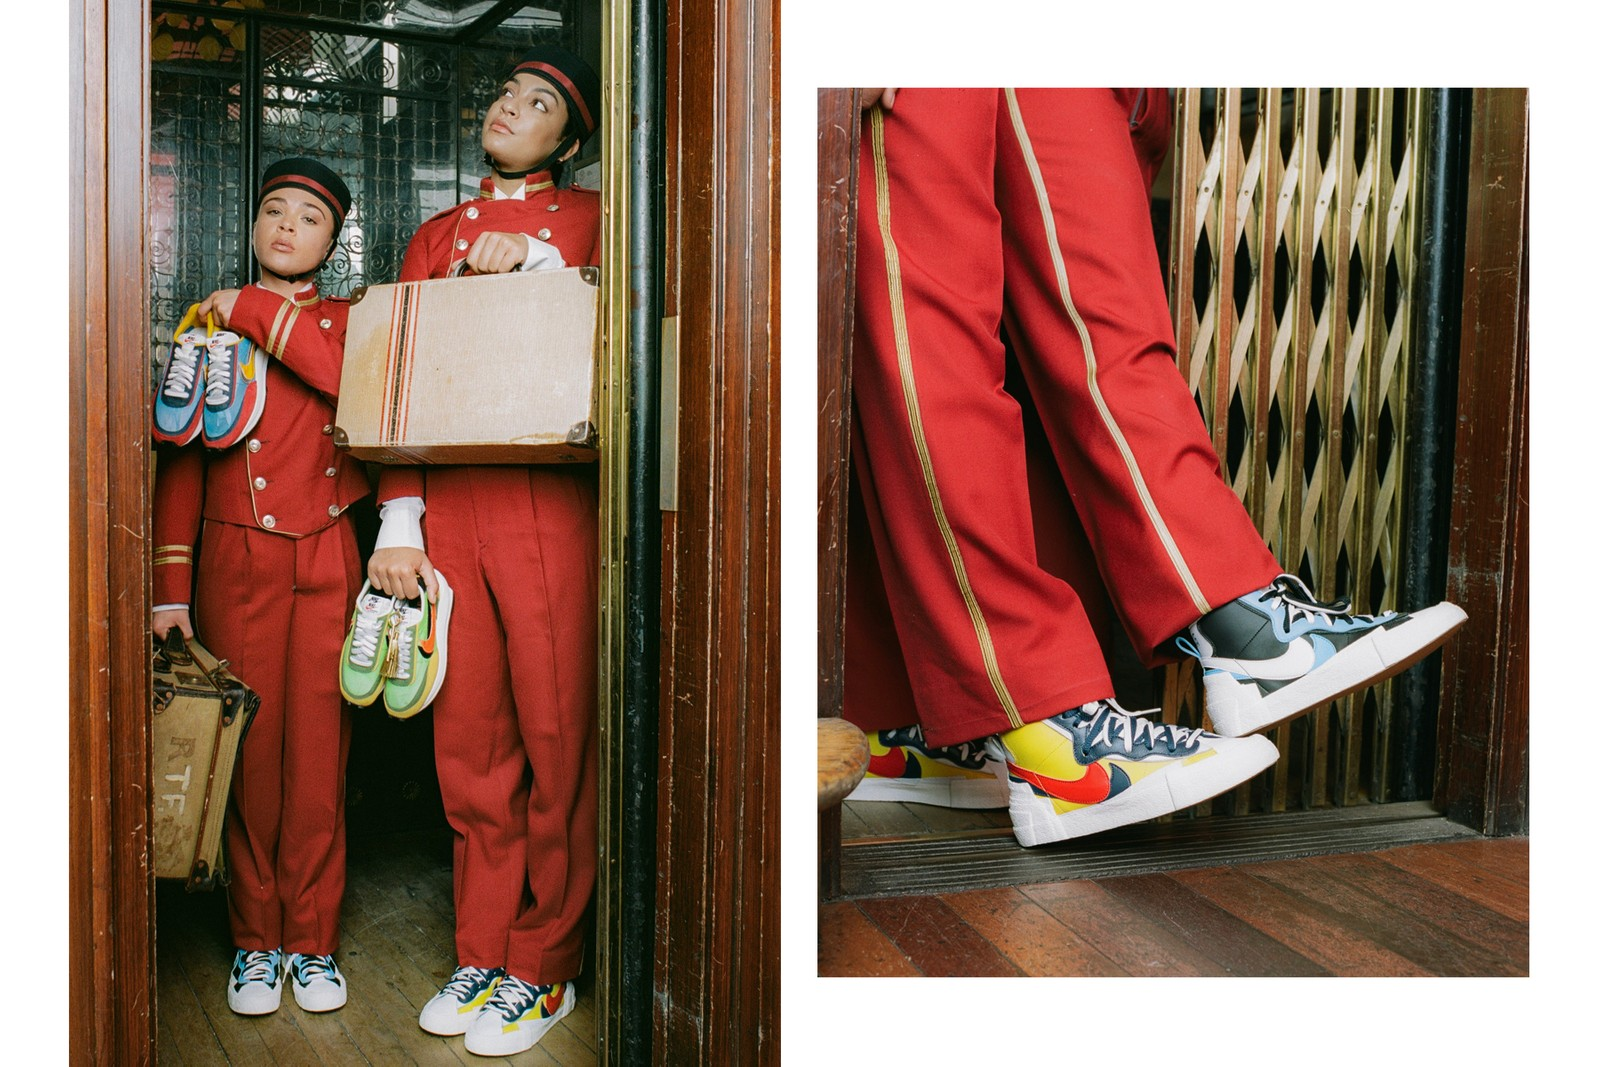 sacai x Nike LDWaffle Blazer Mid Editorial Wes Anderson The Grand Budapest Hotel Bellboy Uniform Green Yellow Orange